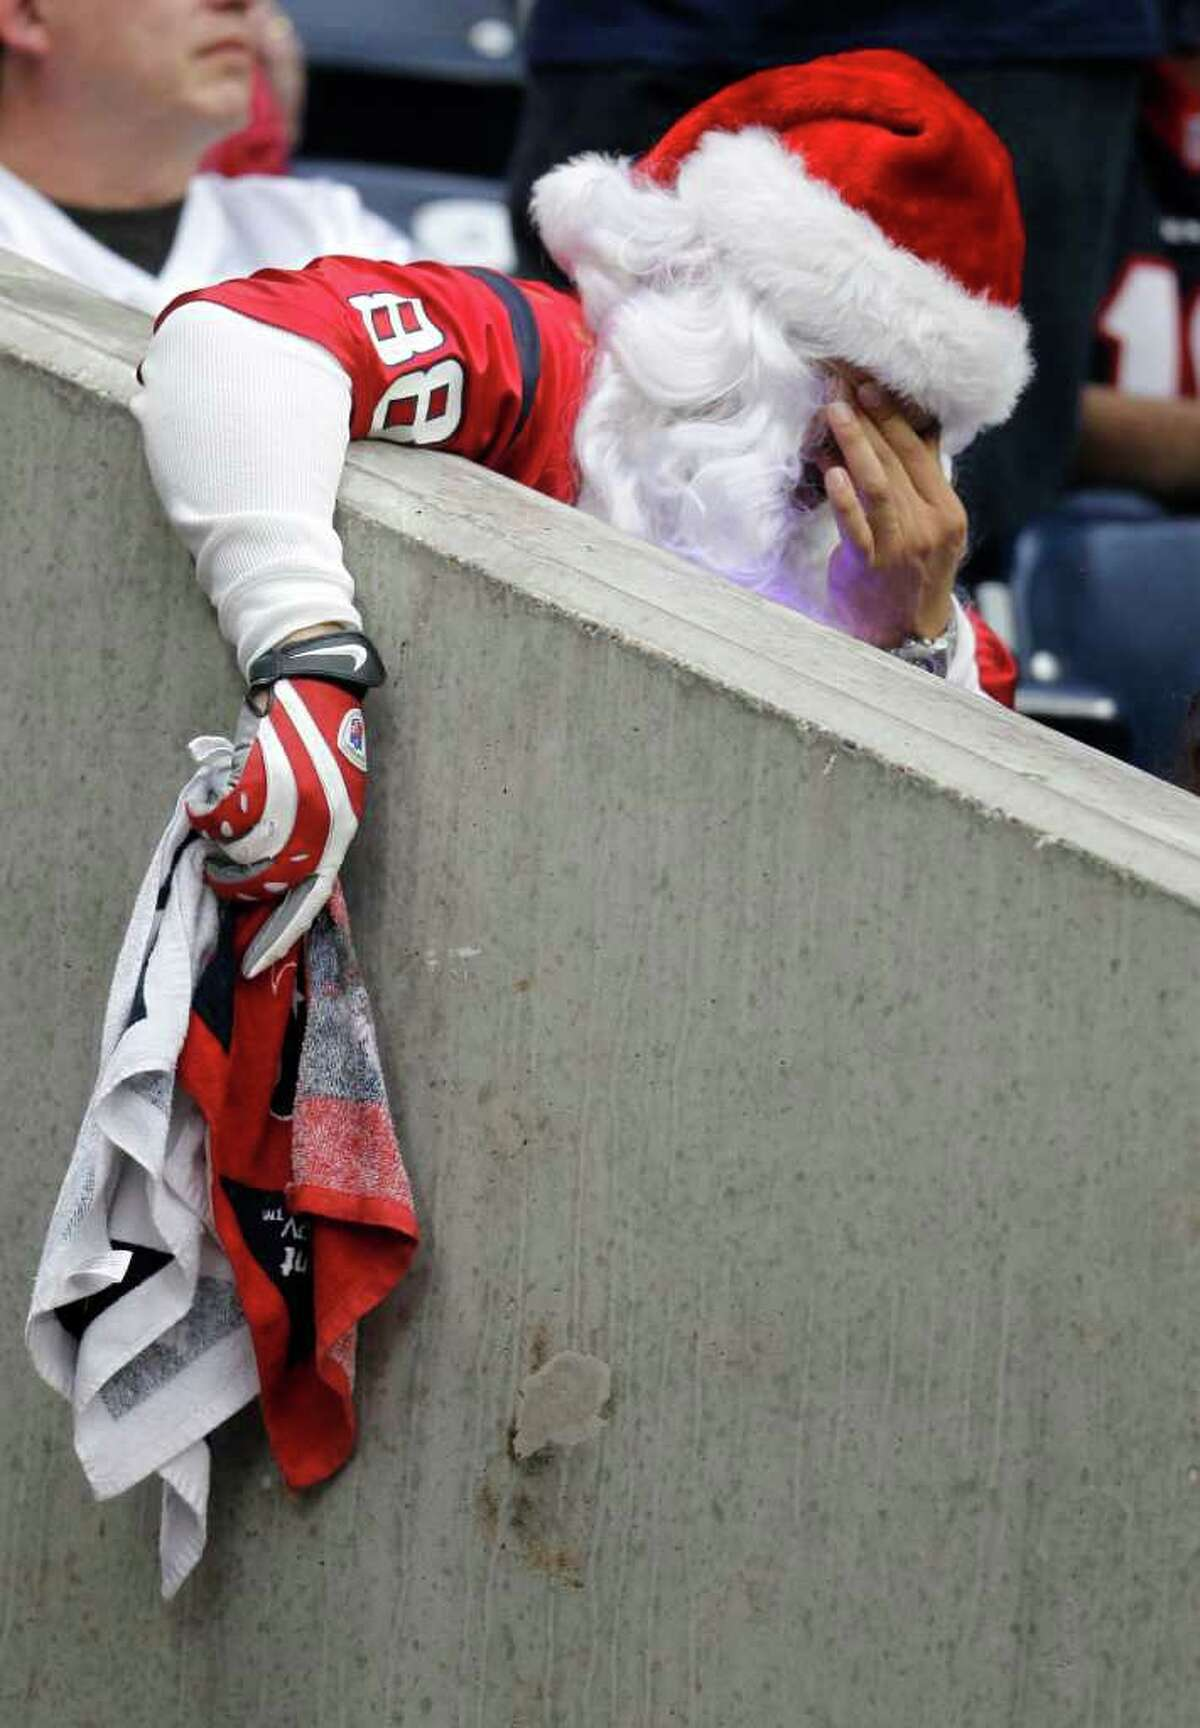 Houston Texans fan Ruben Rincon reacts after the Texans interception during the fourth quarter of the NFL football game at Reliant Stadium, Dec. 18, 2011, in Houston. Panthers won 28-13.